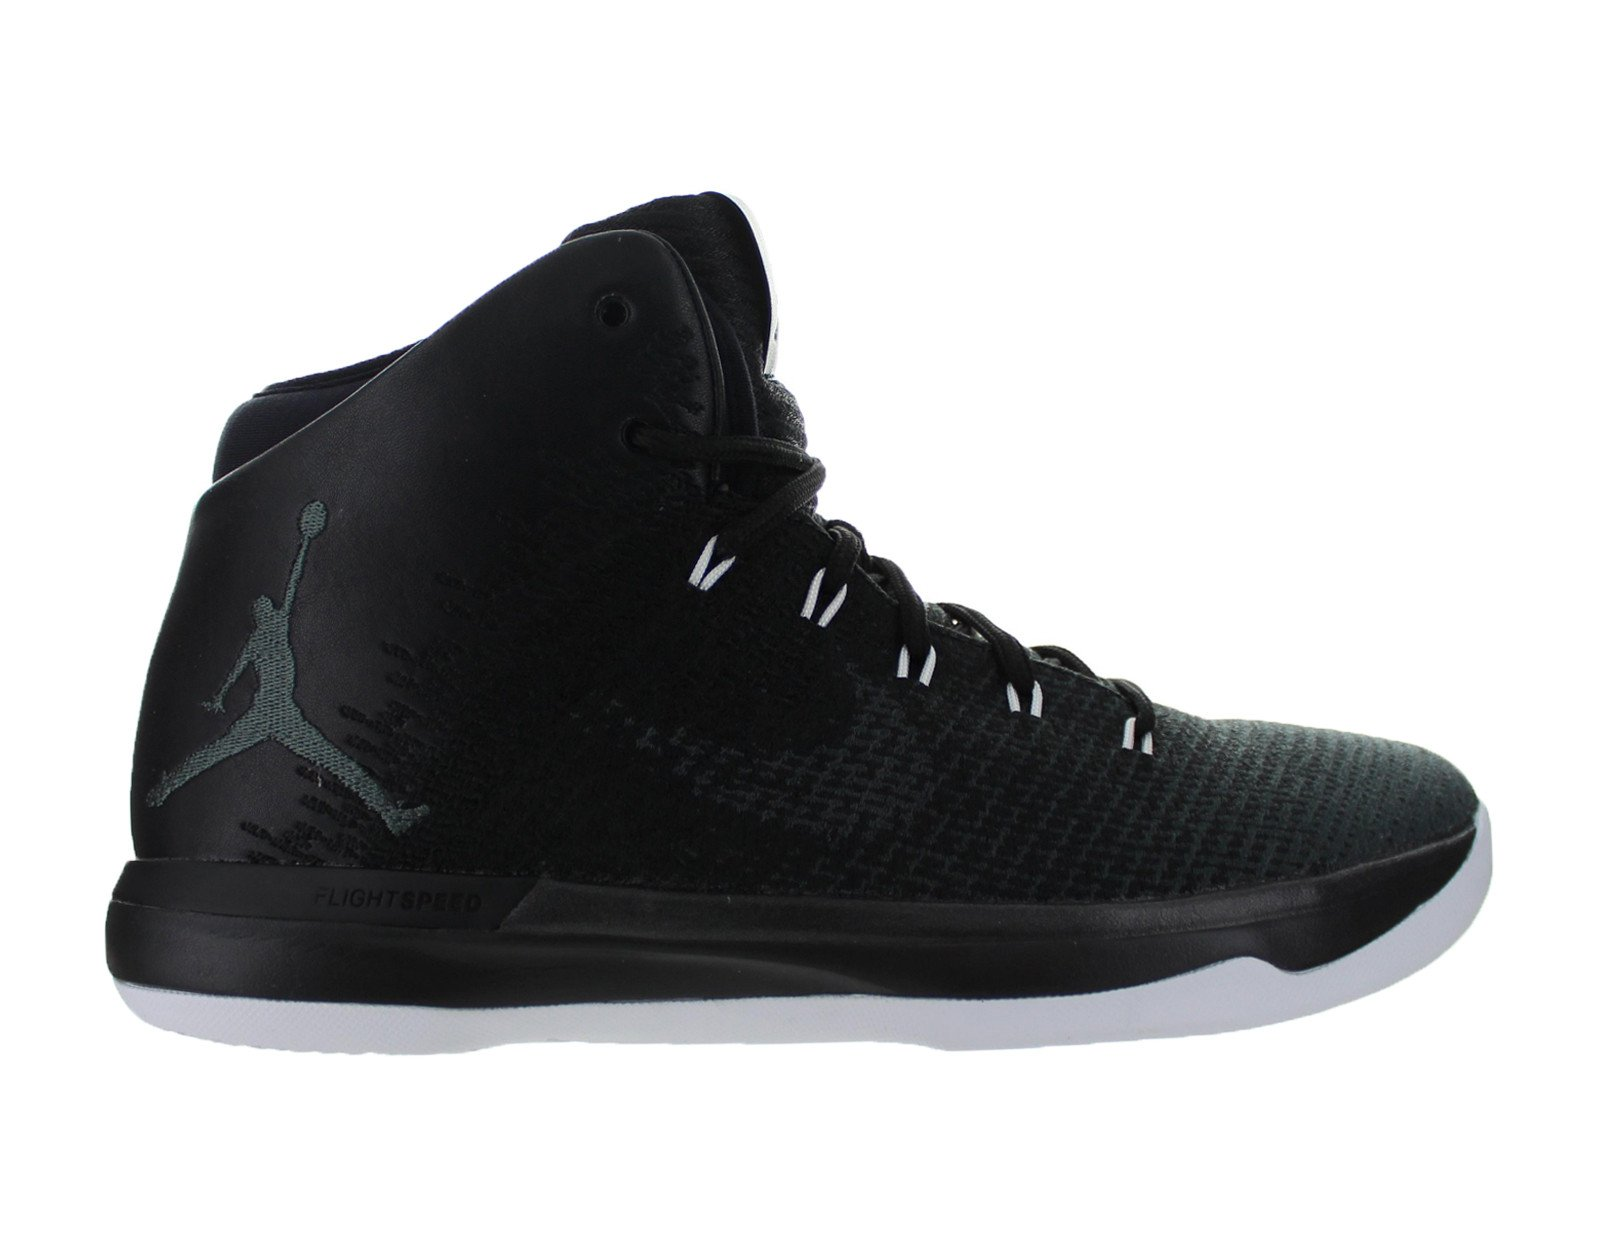 3110990f350 ... clearance mens air jordan xxxi 31 black cat anthracite black white  845037 010 85c05 e536b